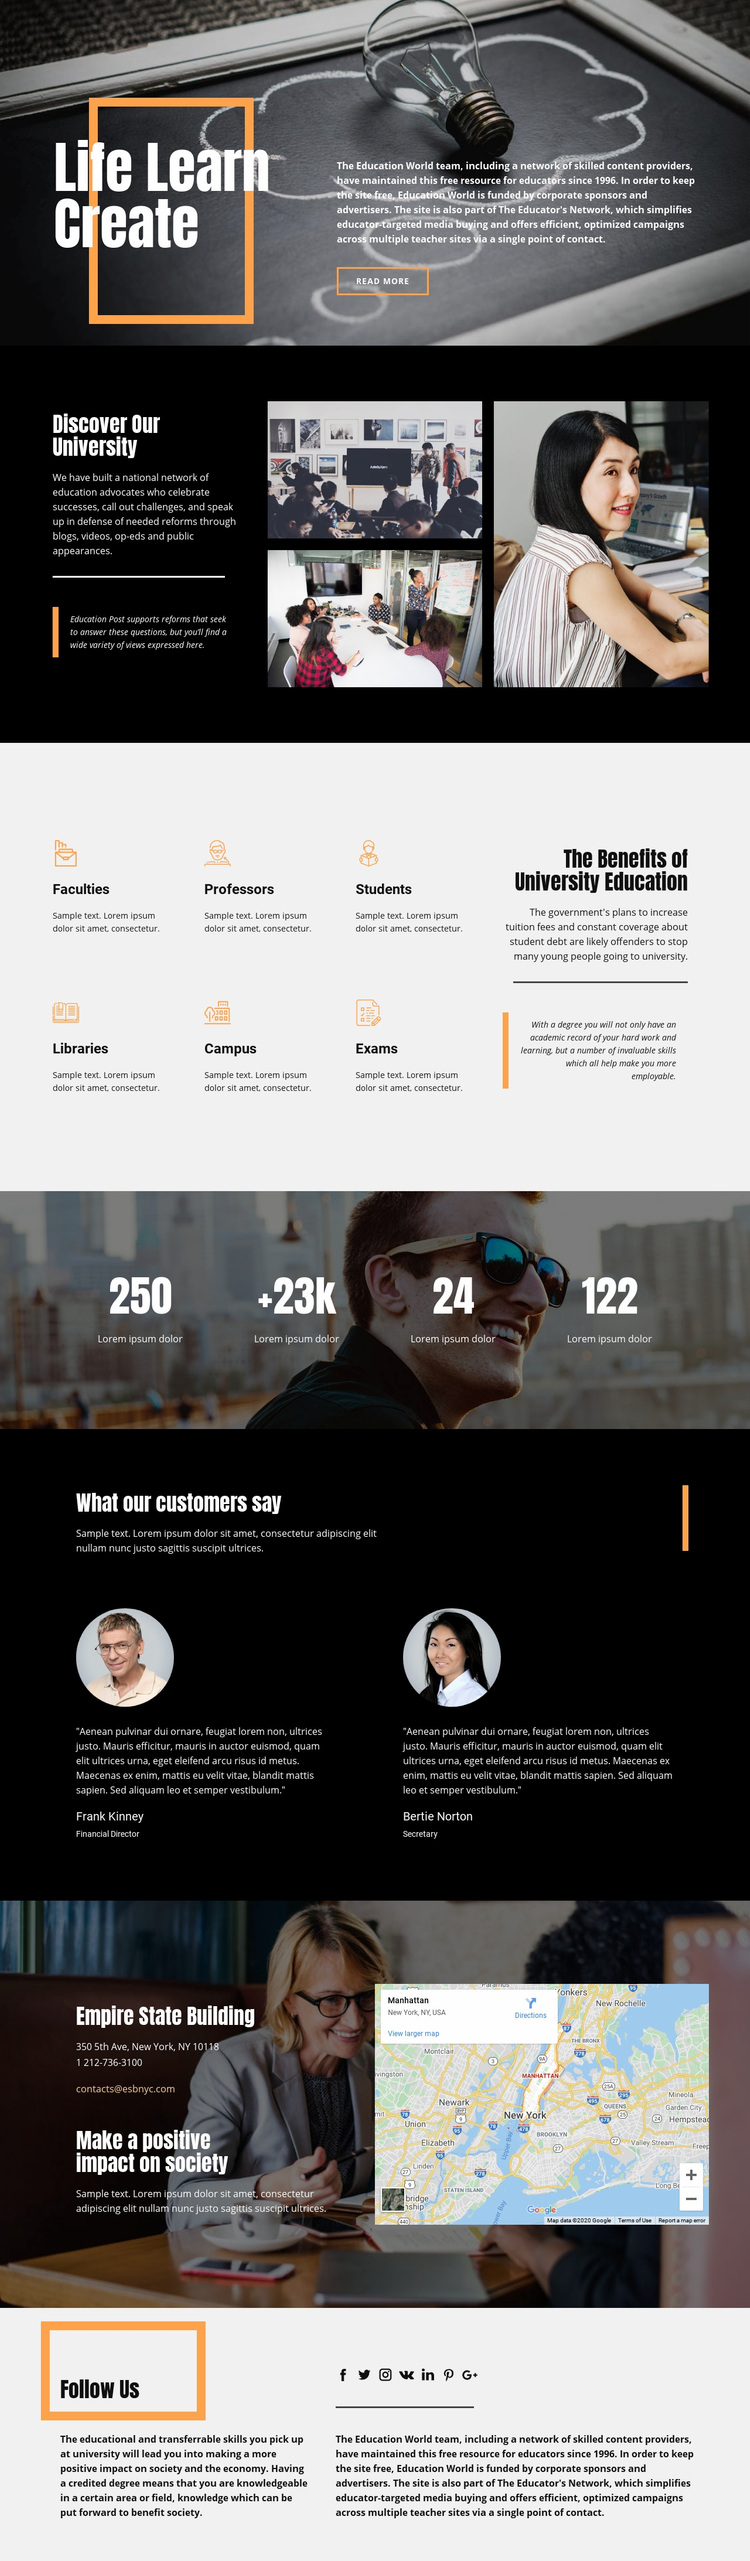 Discover highs of education Web Page Designer